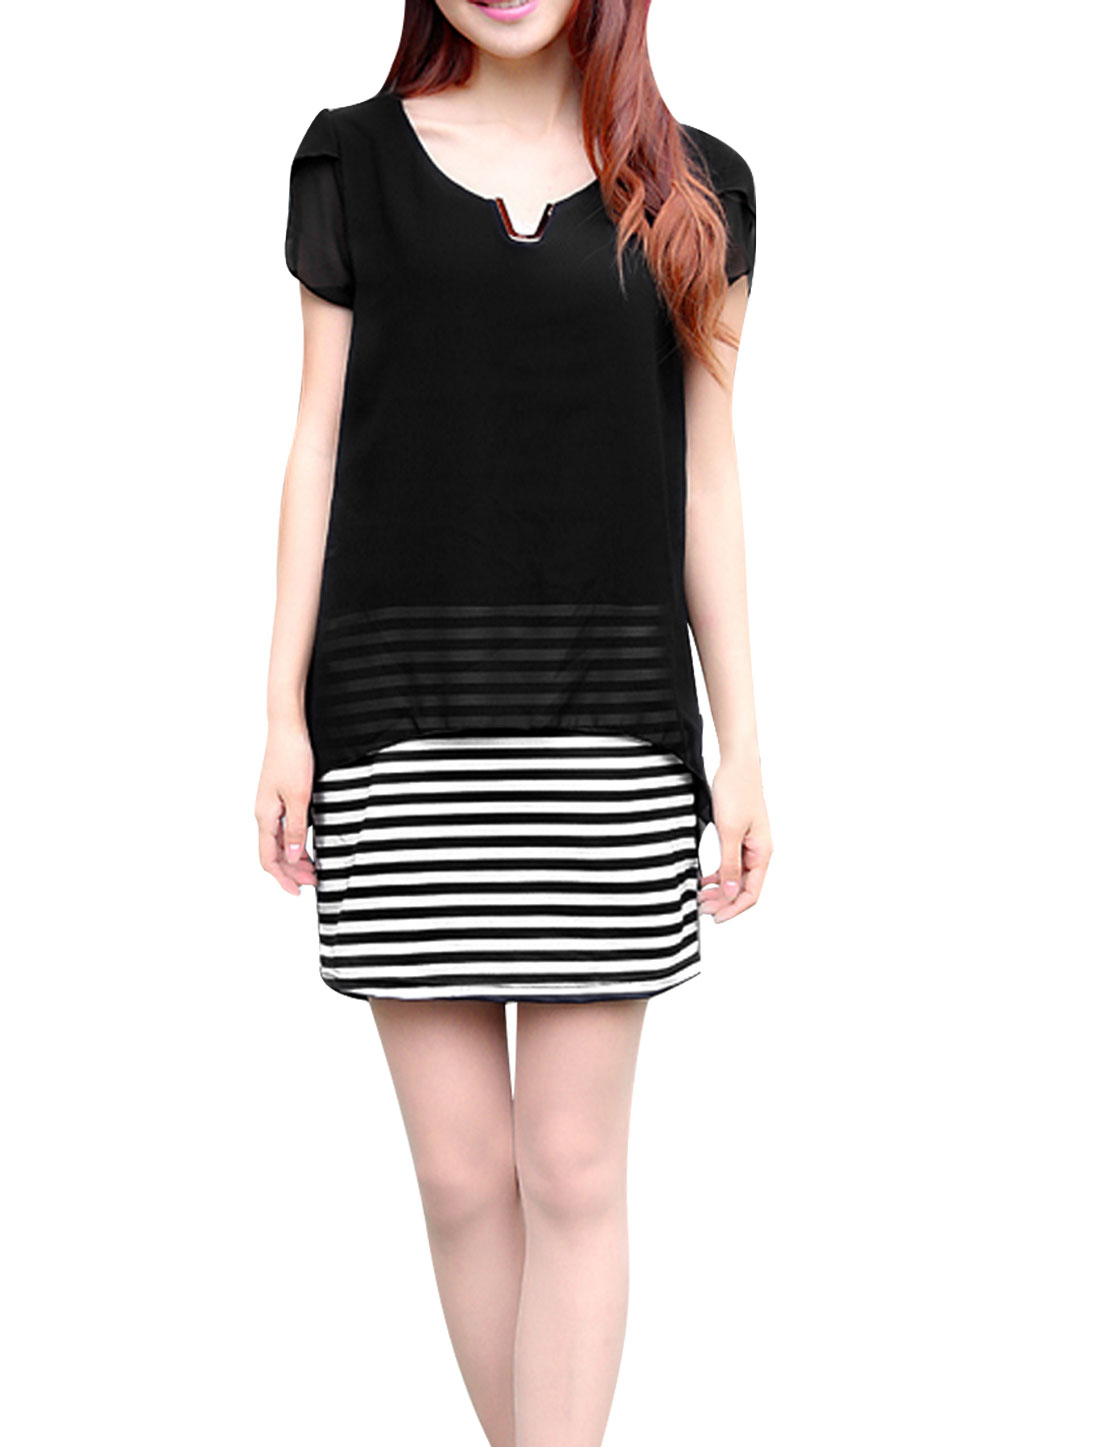 Lady Stripes Prints Short Sleeve Chiffon Shirt Dress Black S